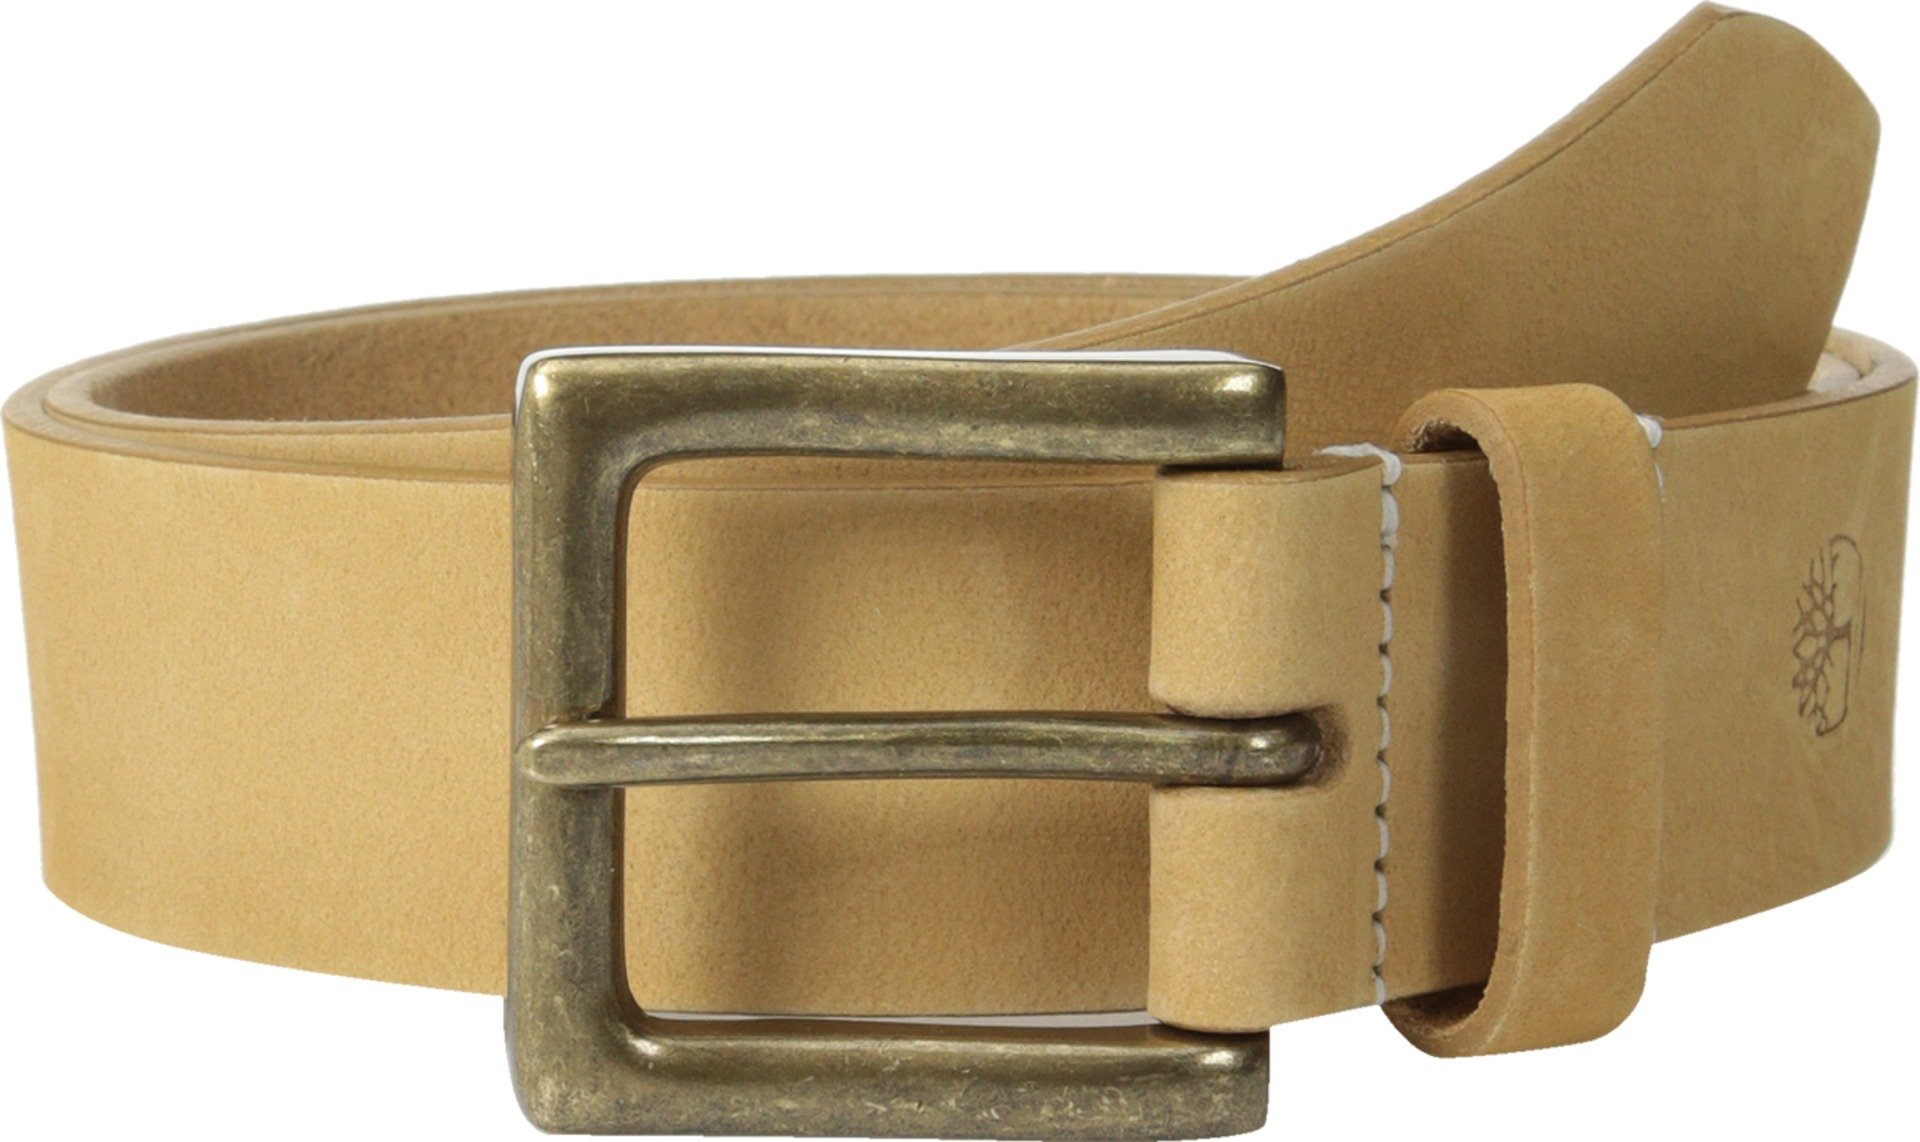 Timberland Men's 38 mm Boot Leather Belt, Wheat, 40